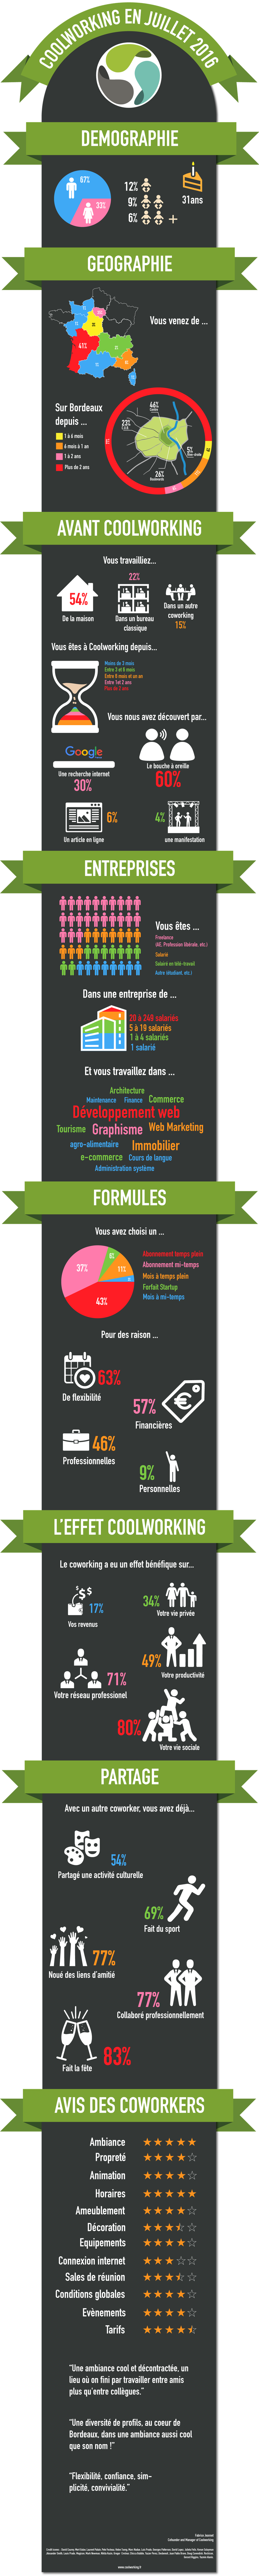 infographie-coolworking-2016